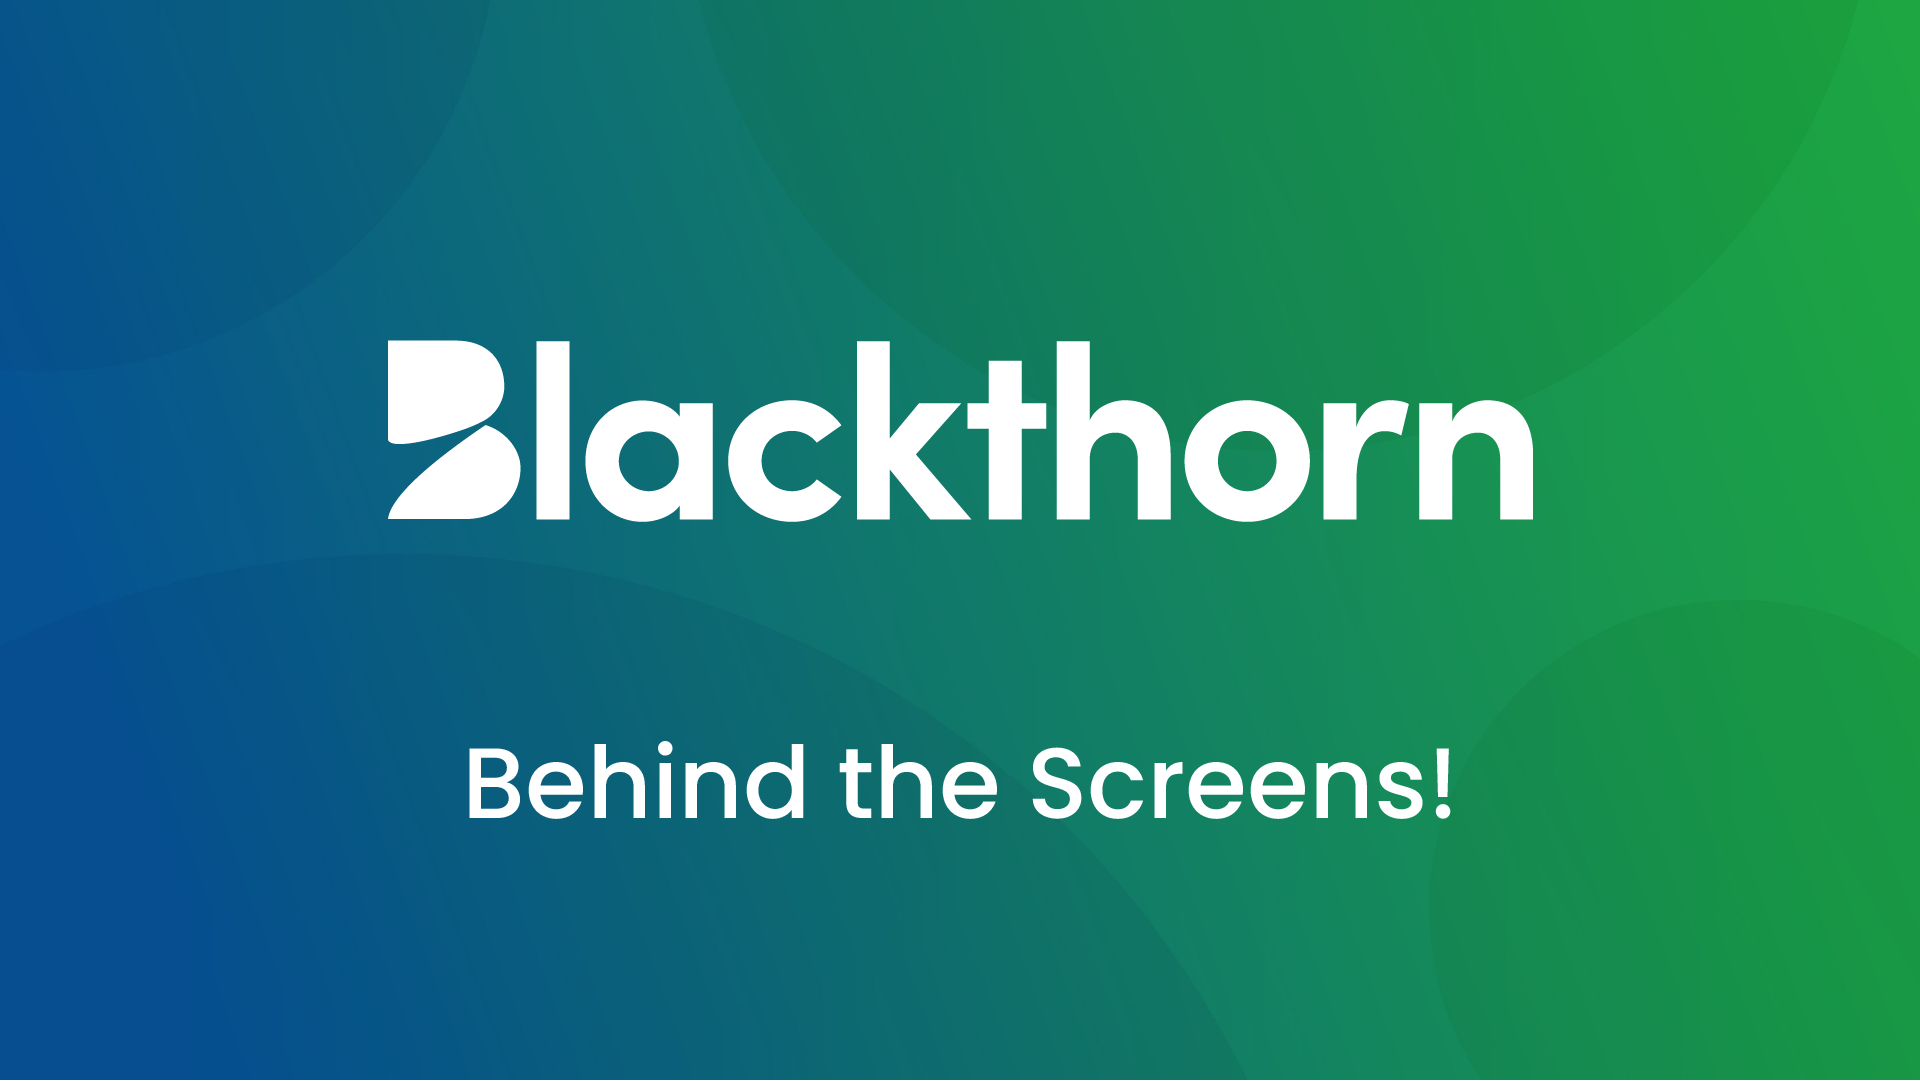 Come work at Blackthorn!